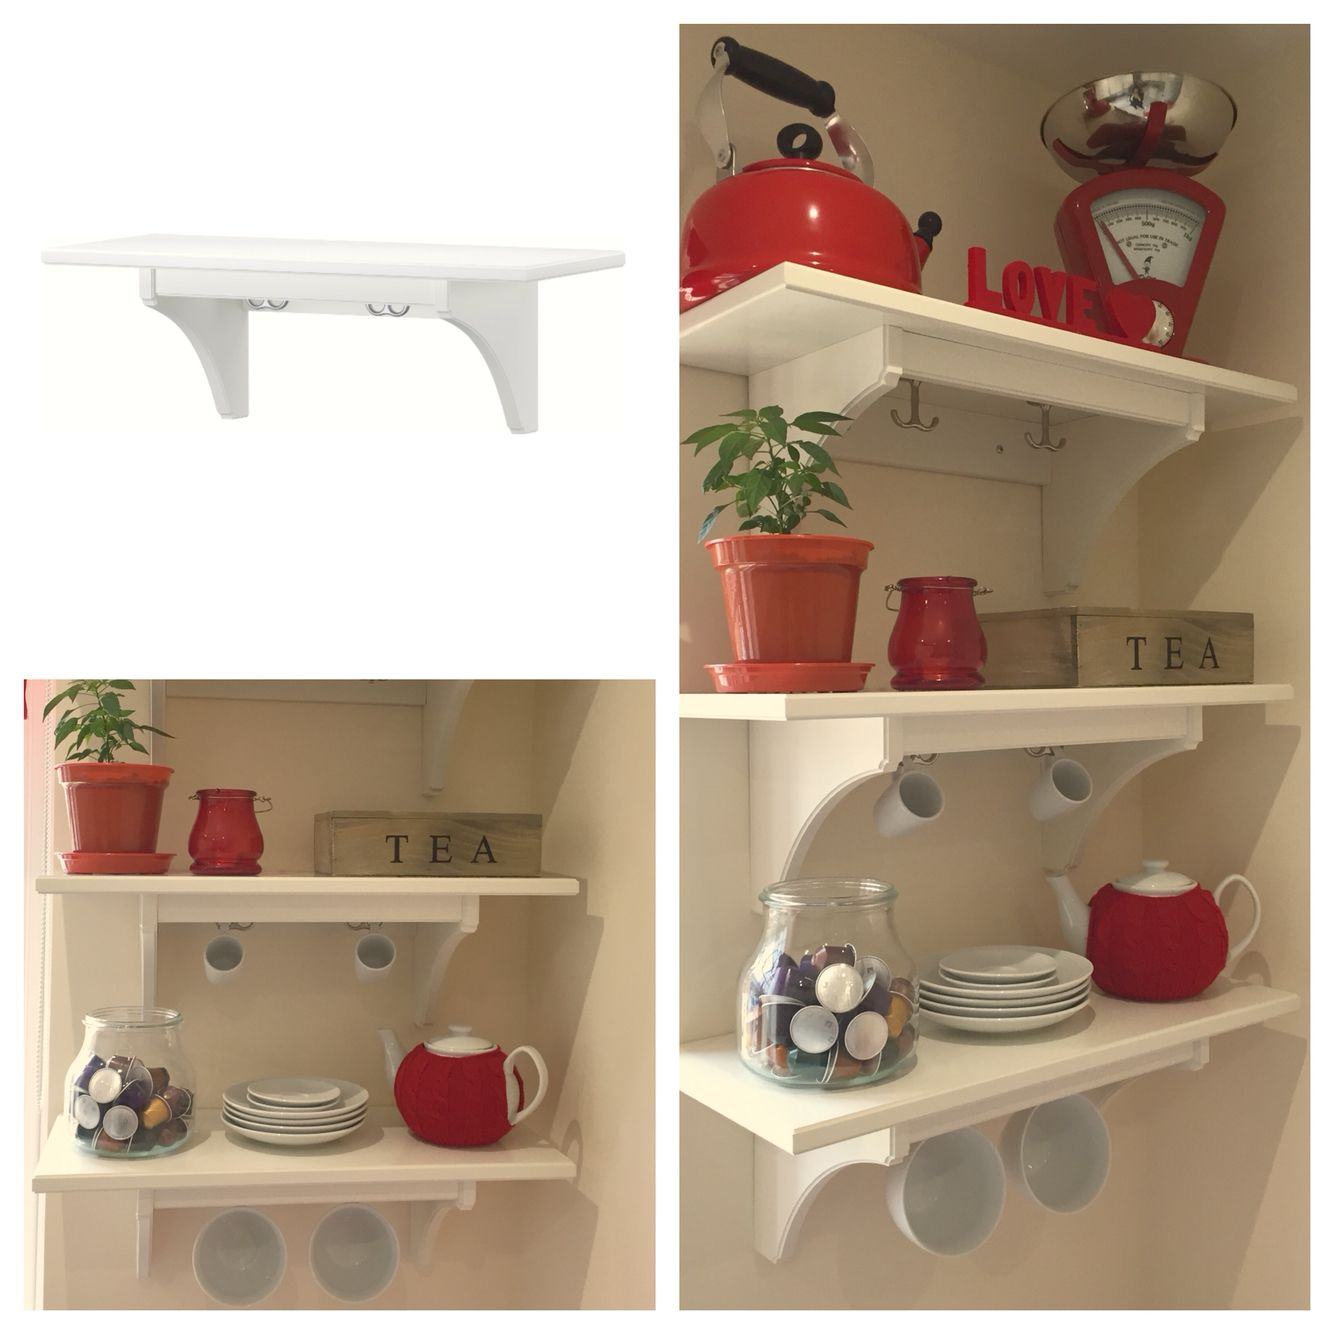 ikea stenstorp shelves x 3 perfect addition to our kitchen ikea stenstorp shelves x 3 perfect addition to our kitchen idea for blank wall styling ideas